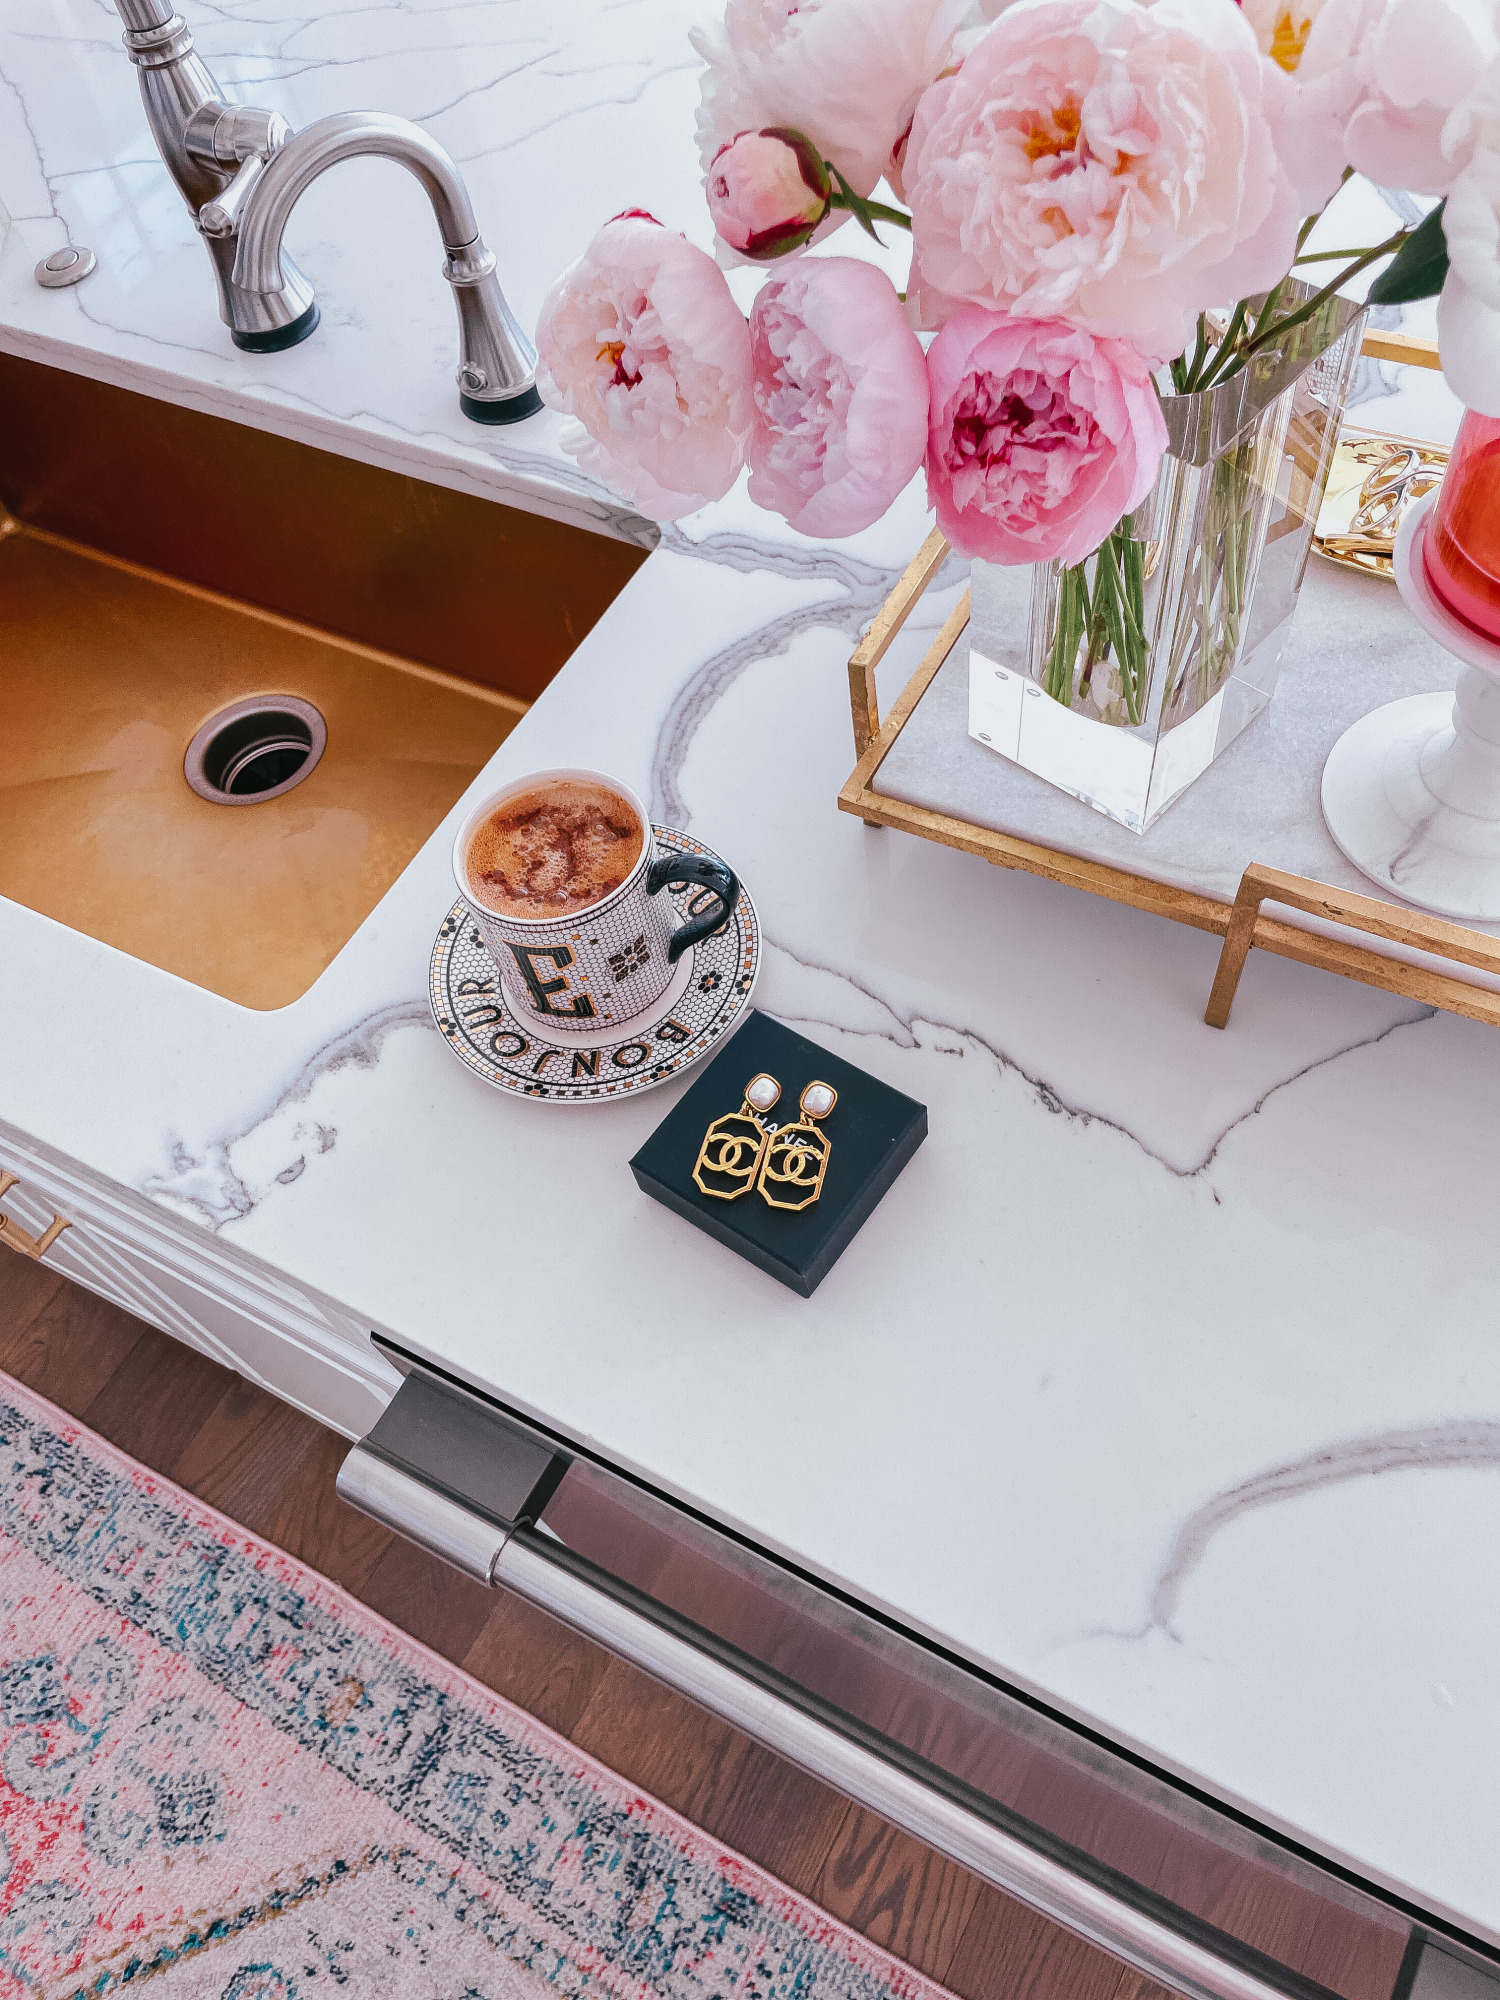 Emily-ann-gemma-kitchen-details-kitchen-decor-chanel-earrings-pretty-coffee-cup-peonies | Instagram Recap by popular US life and style blog, The Sweetest Thing: image of a black and white monogram Anthropologie mug and saucers next to a box of gold Chanel statement earrings a rose gold and white marble tray holding a clear glass vase filled with pink peonies.